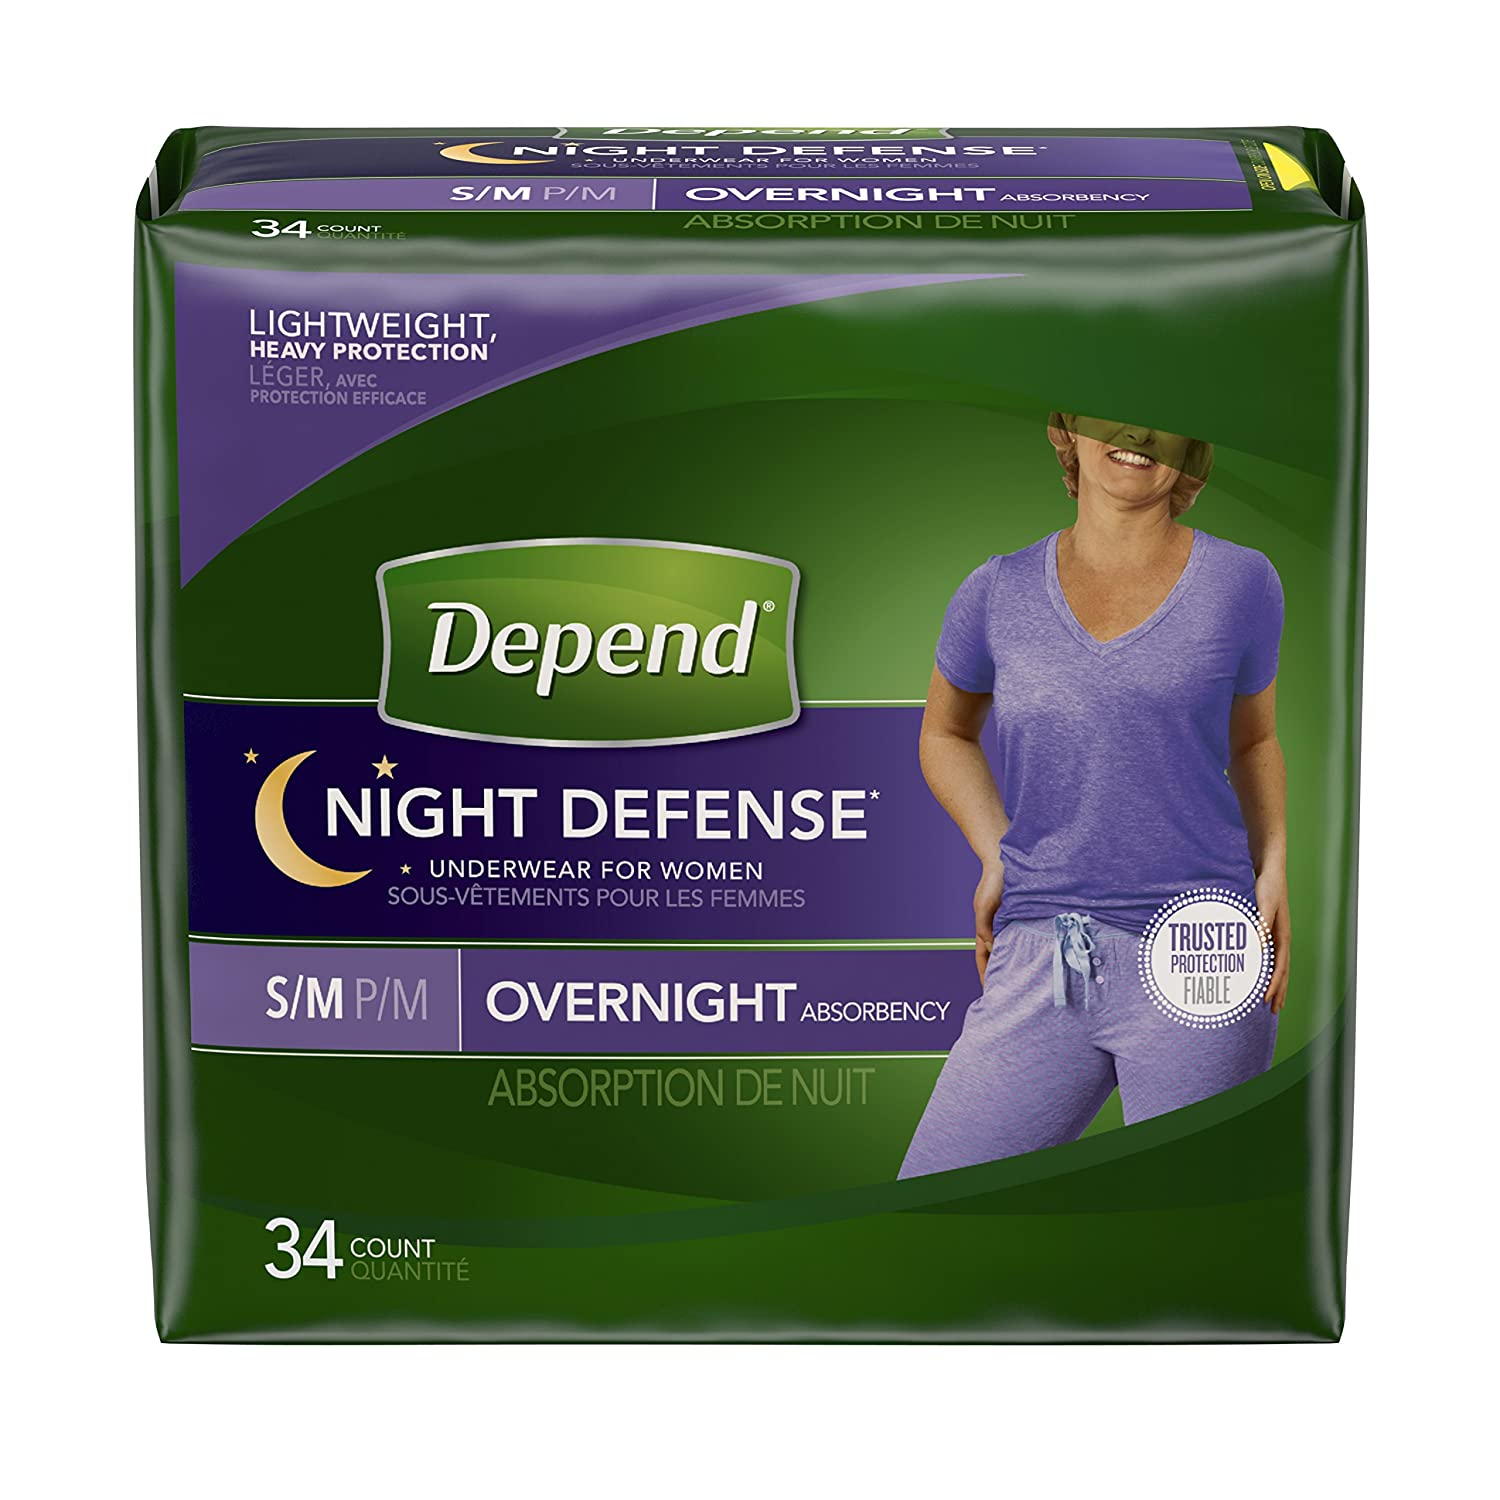 Depend Night Defense Incontinence Overnight Underwear for Women, S/M, Packaging May Vary